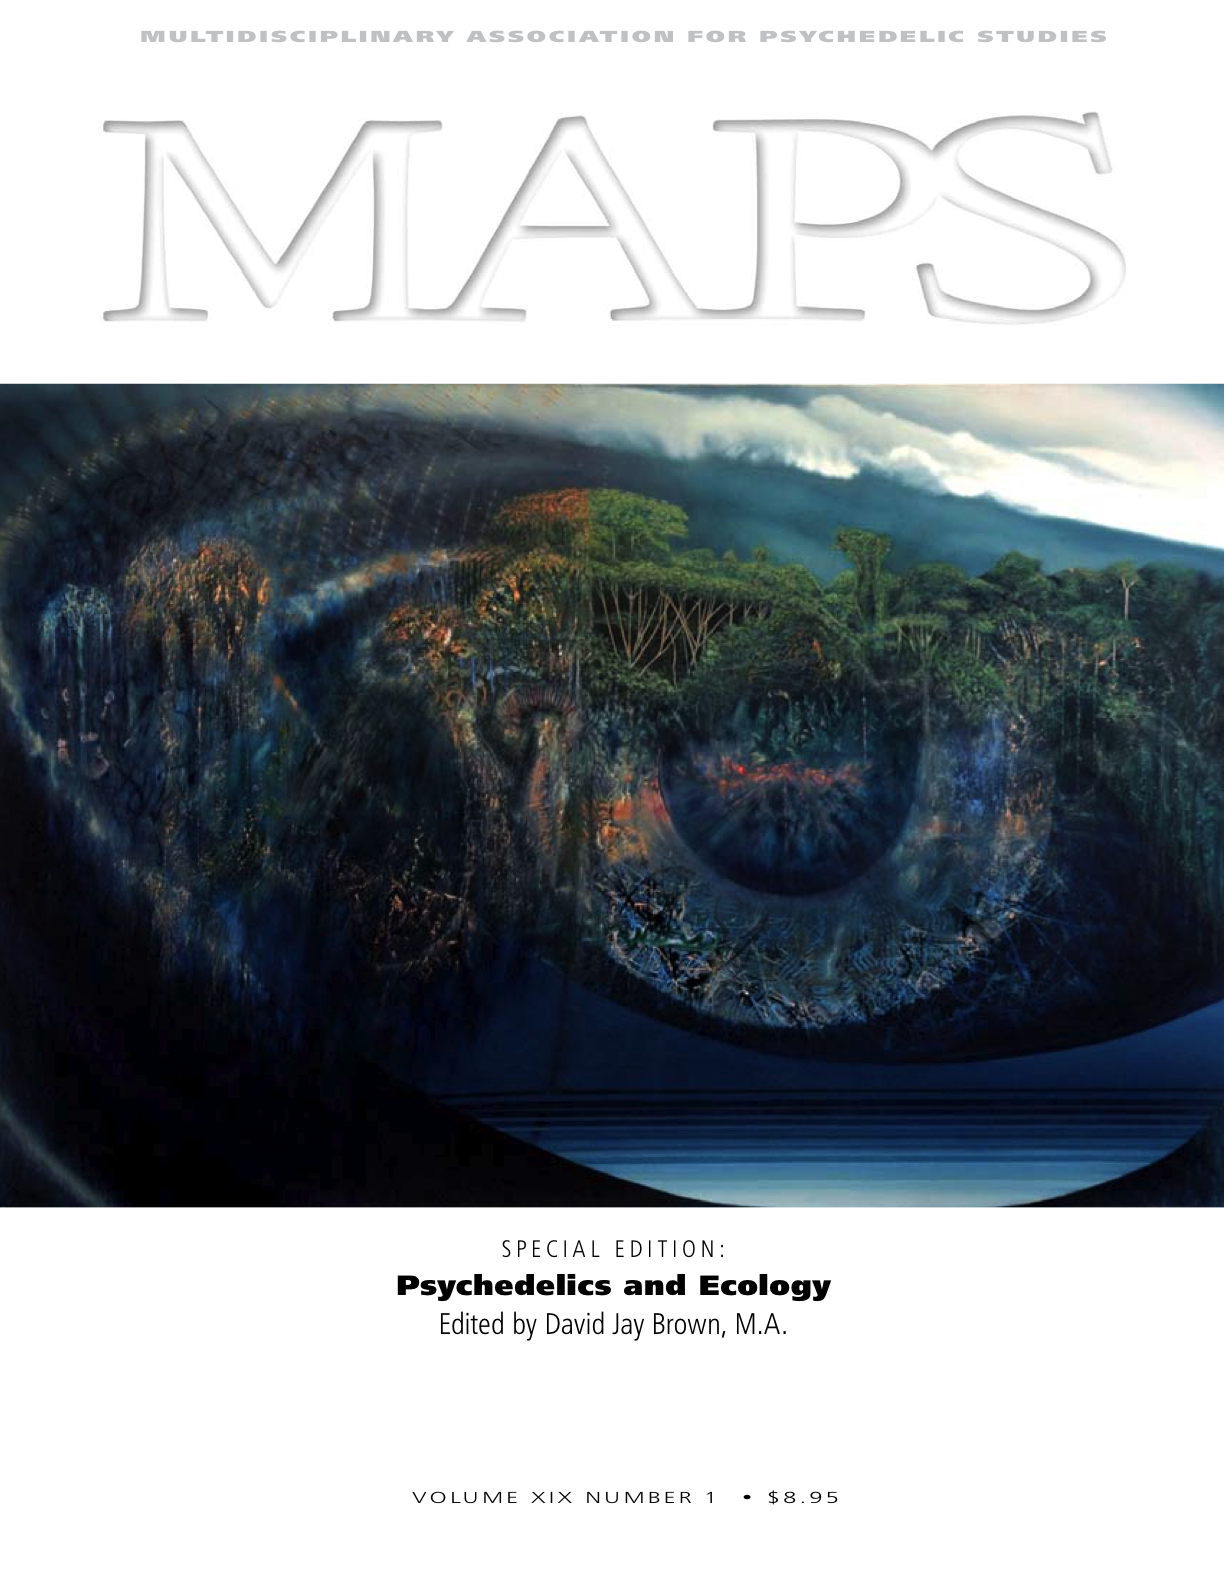 MAPS Bulletin Vol xix No 1: Spring 2009 - Front Cover Image - Psychedelic Art - From The Inside Out by Rick Harlow